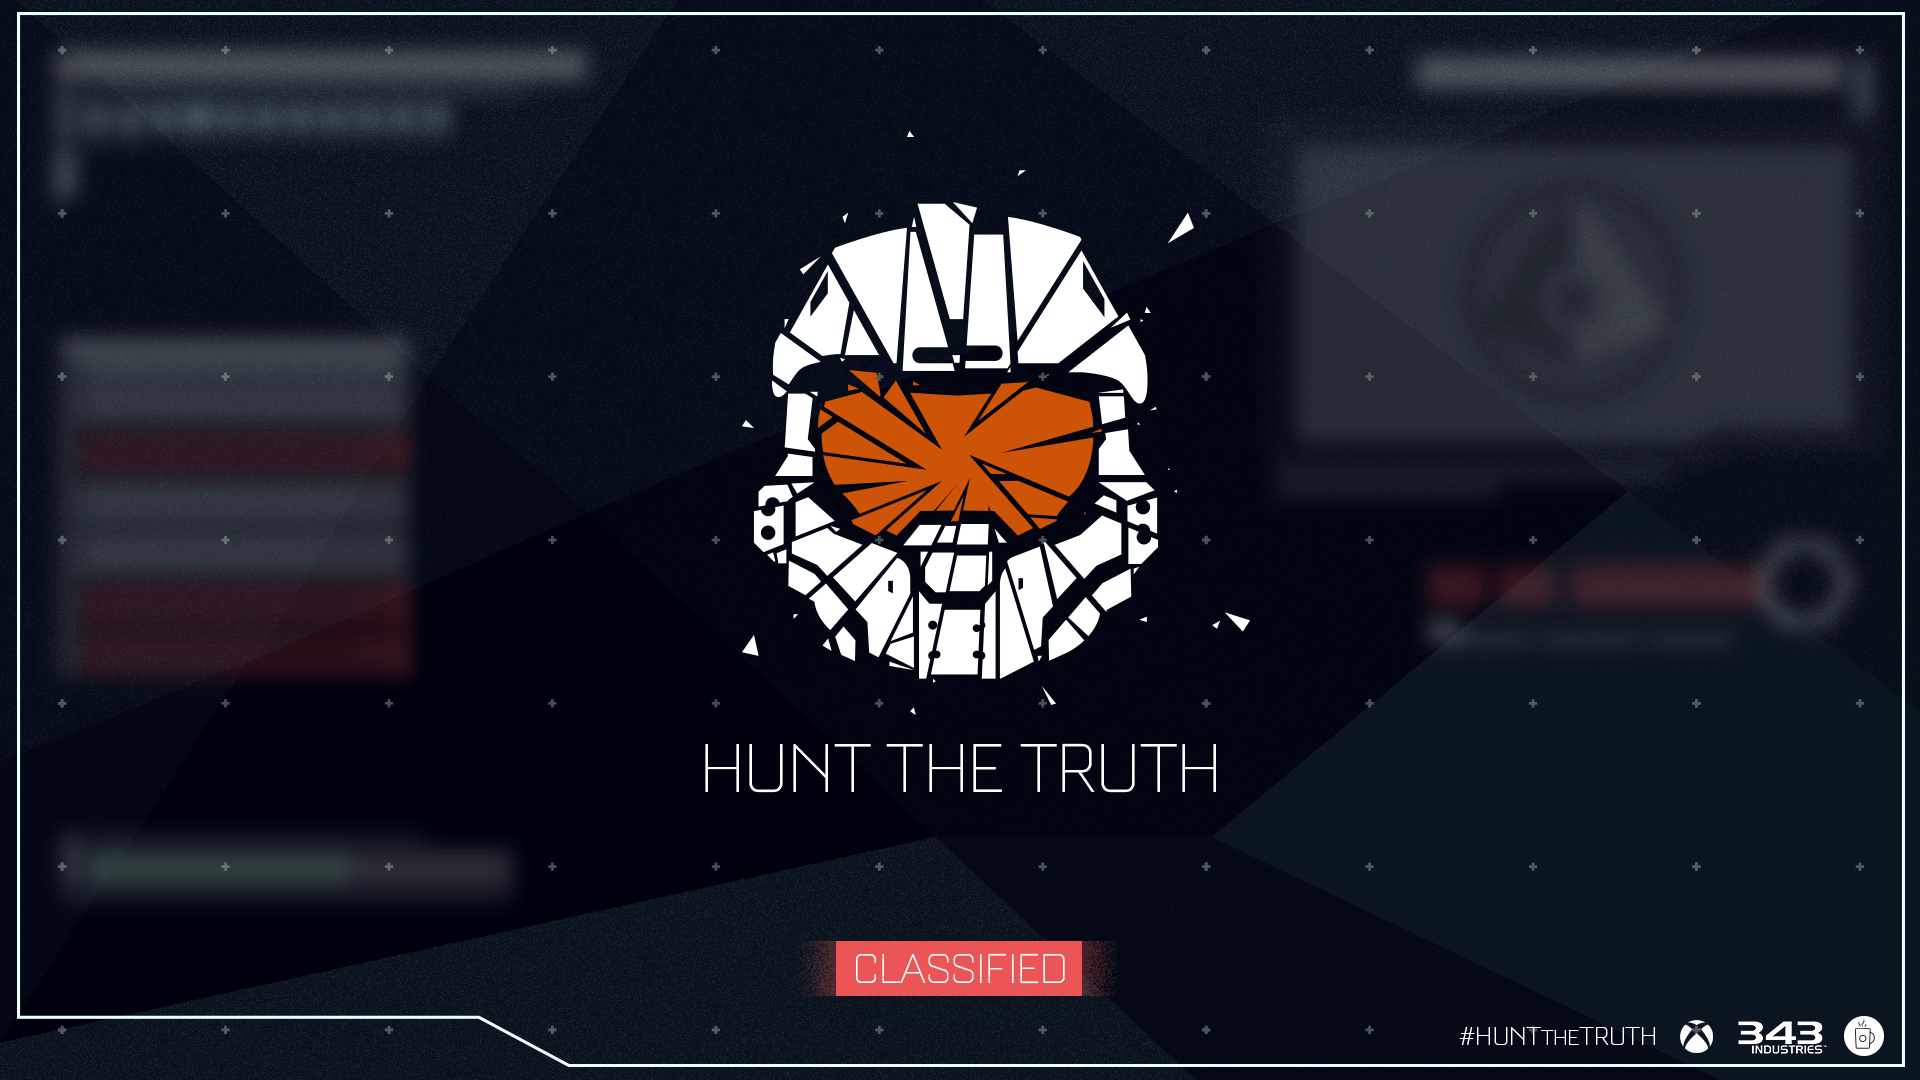 HUNTtheTRUTH